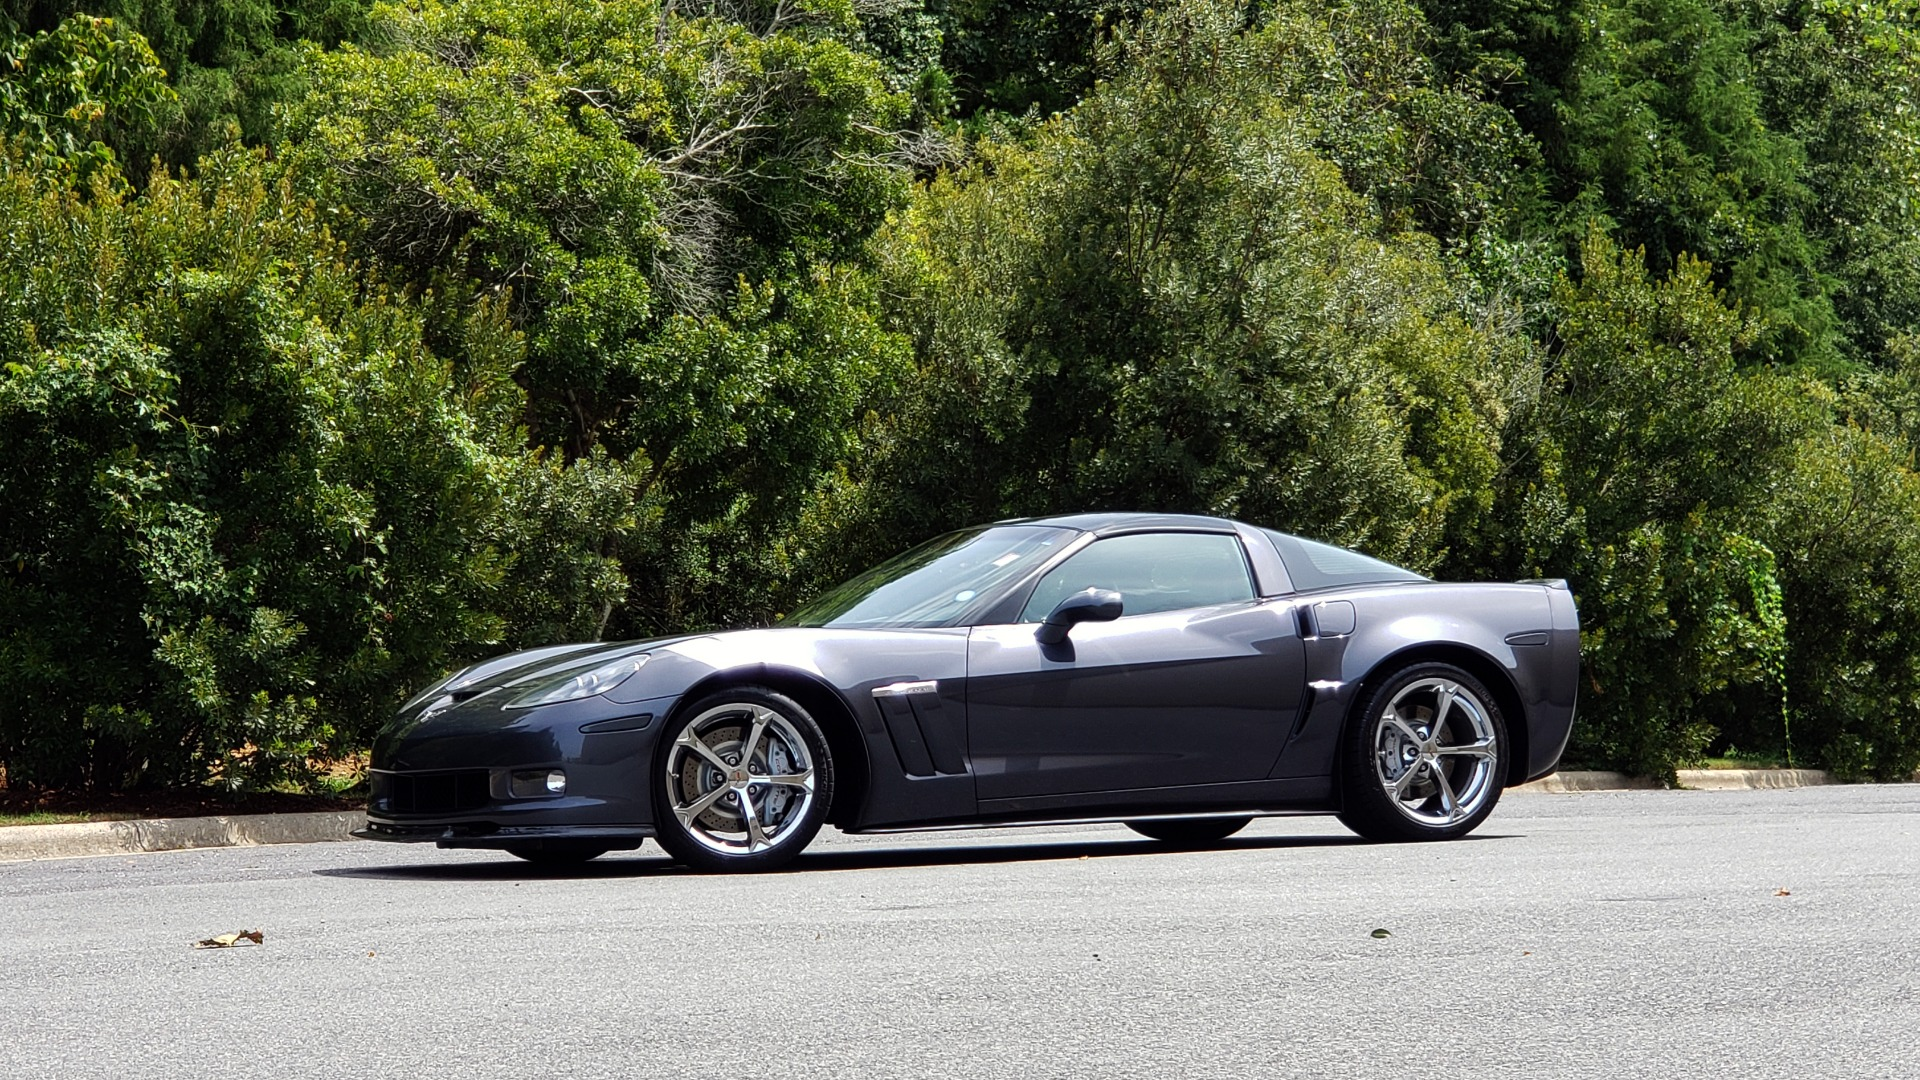 Used 2010 Chevrolet CORVETTE Z16 GRAND SPORT 3LT / HUD / 6.2L V8 / 6-SPD AUTO / NPP EXH for sale Sold at Formula Imports in Charlotte NC 28227 2